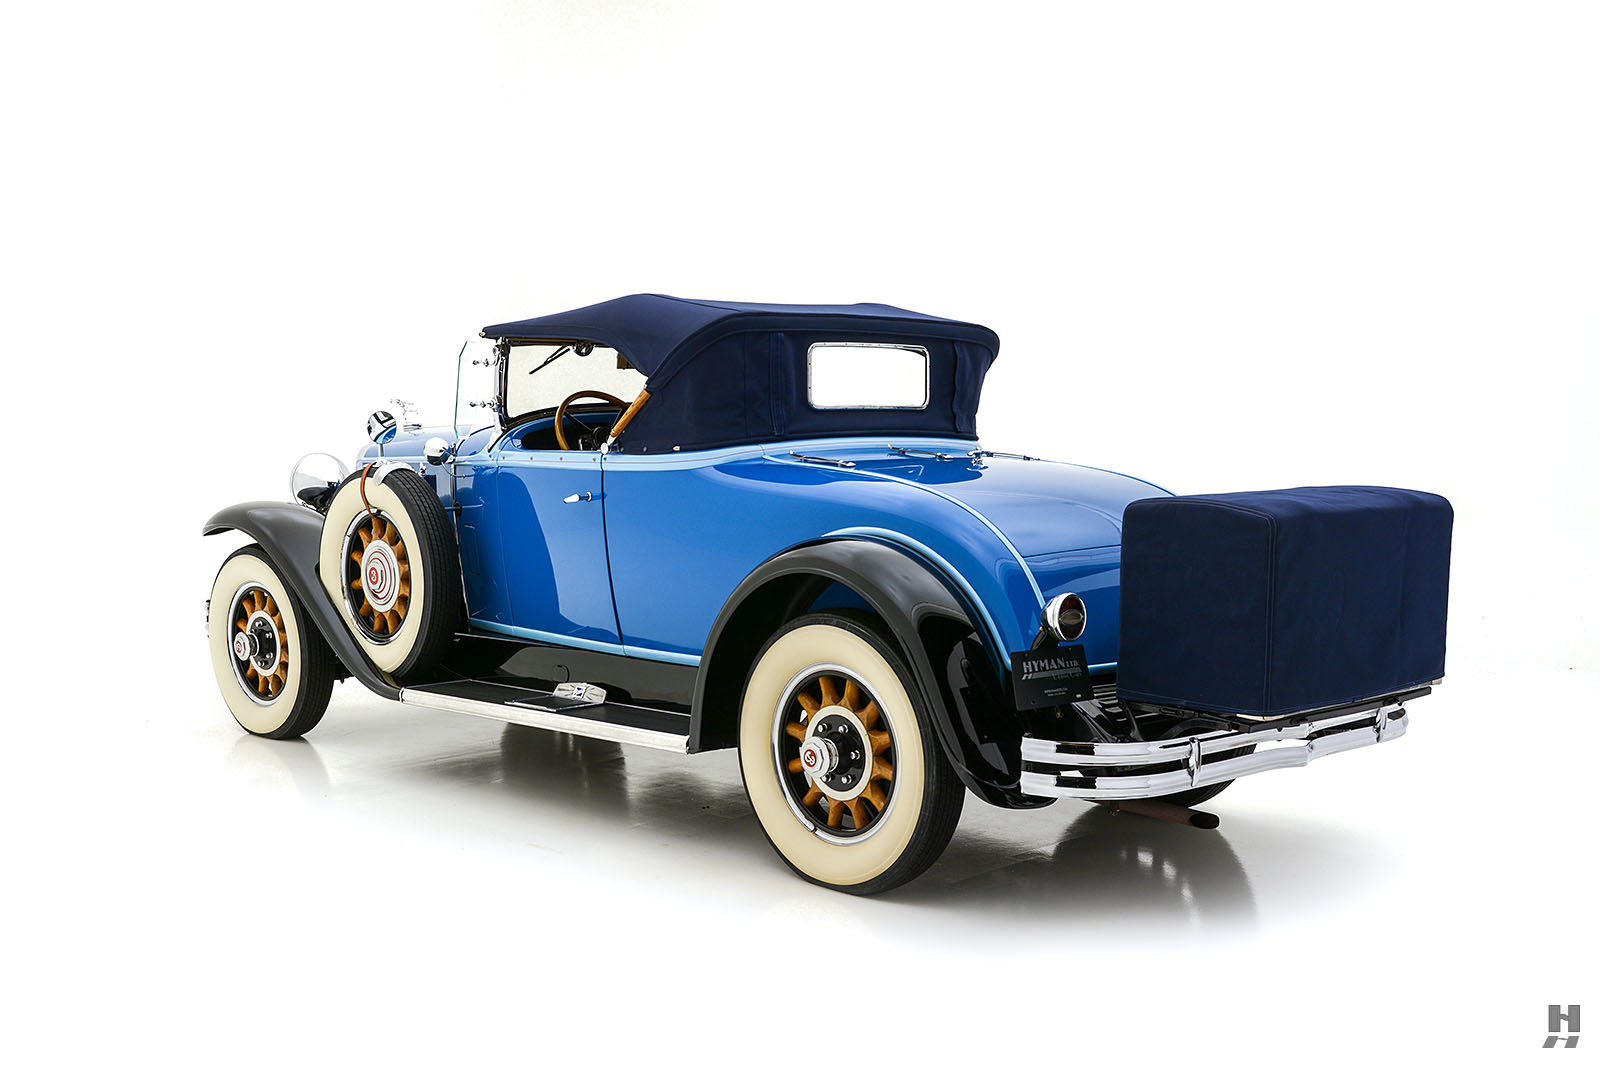 1930 BUICK SERIES 60 ROADSTER For Sale (picture 6 of 6)